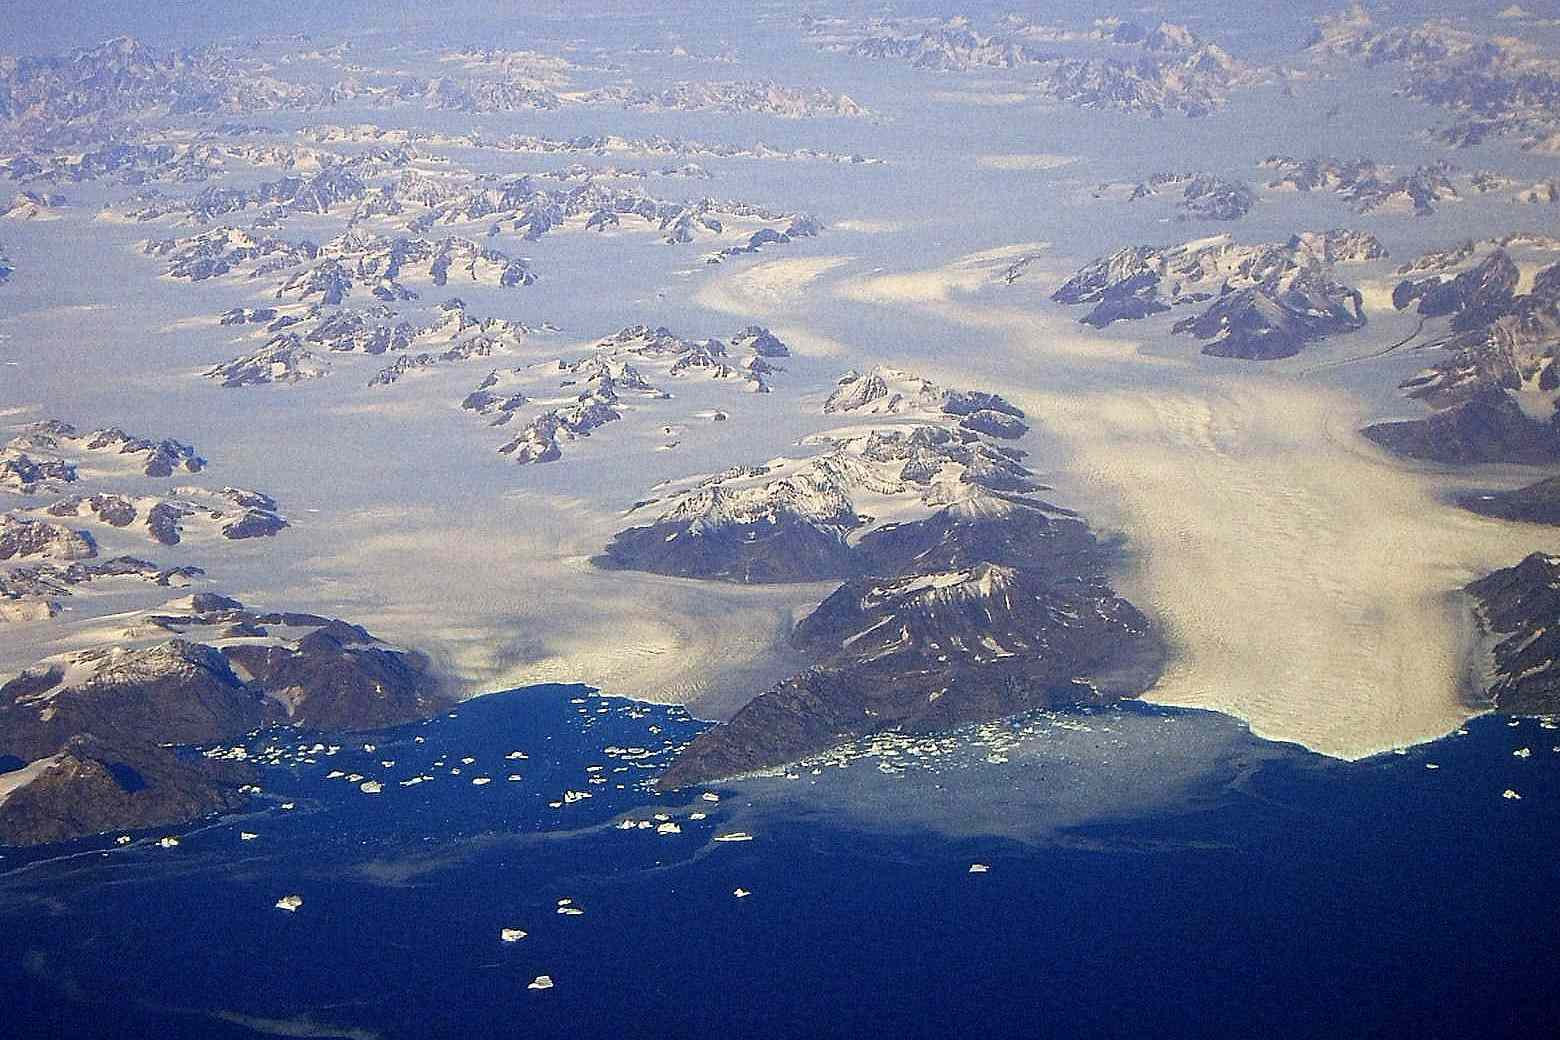 Aerial view of Steenstrup Glacier with icebergs around it